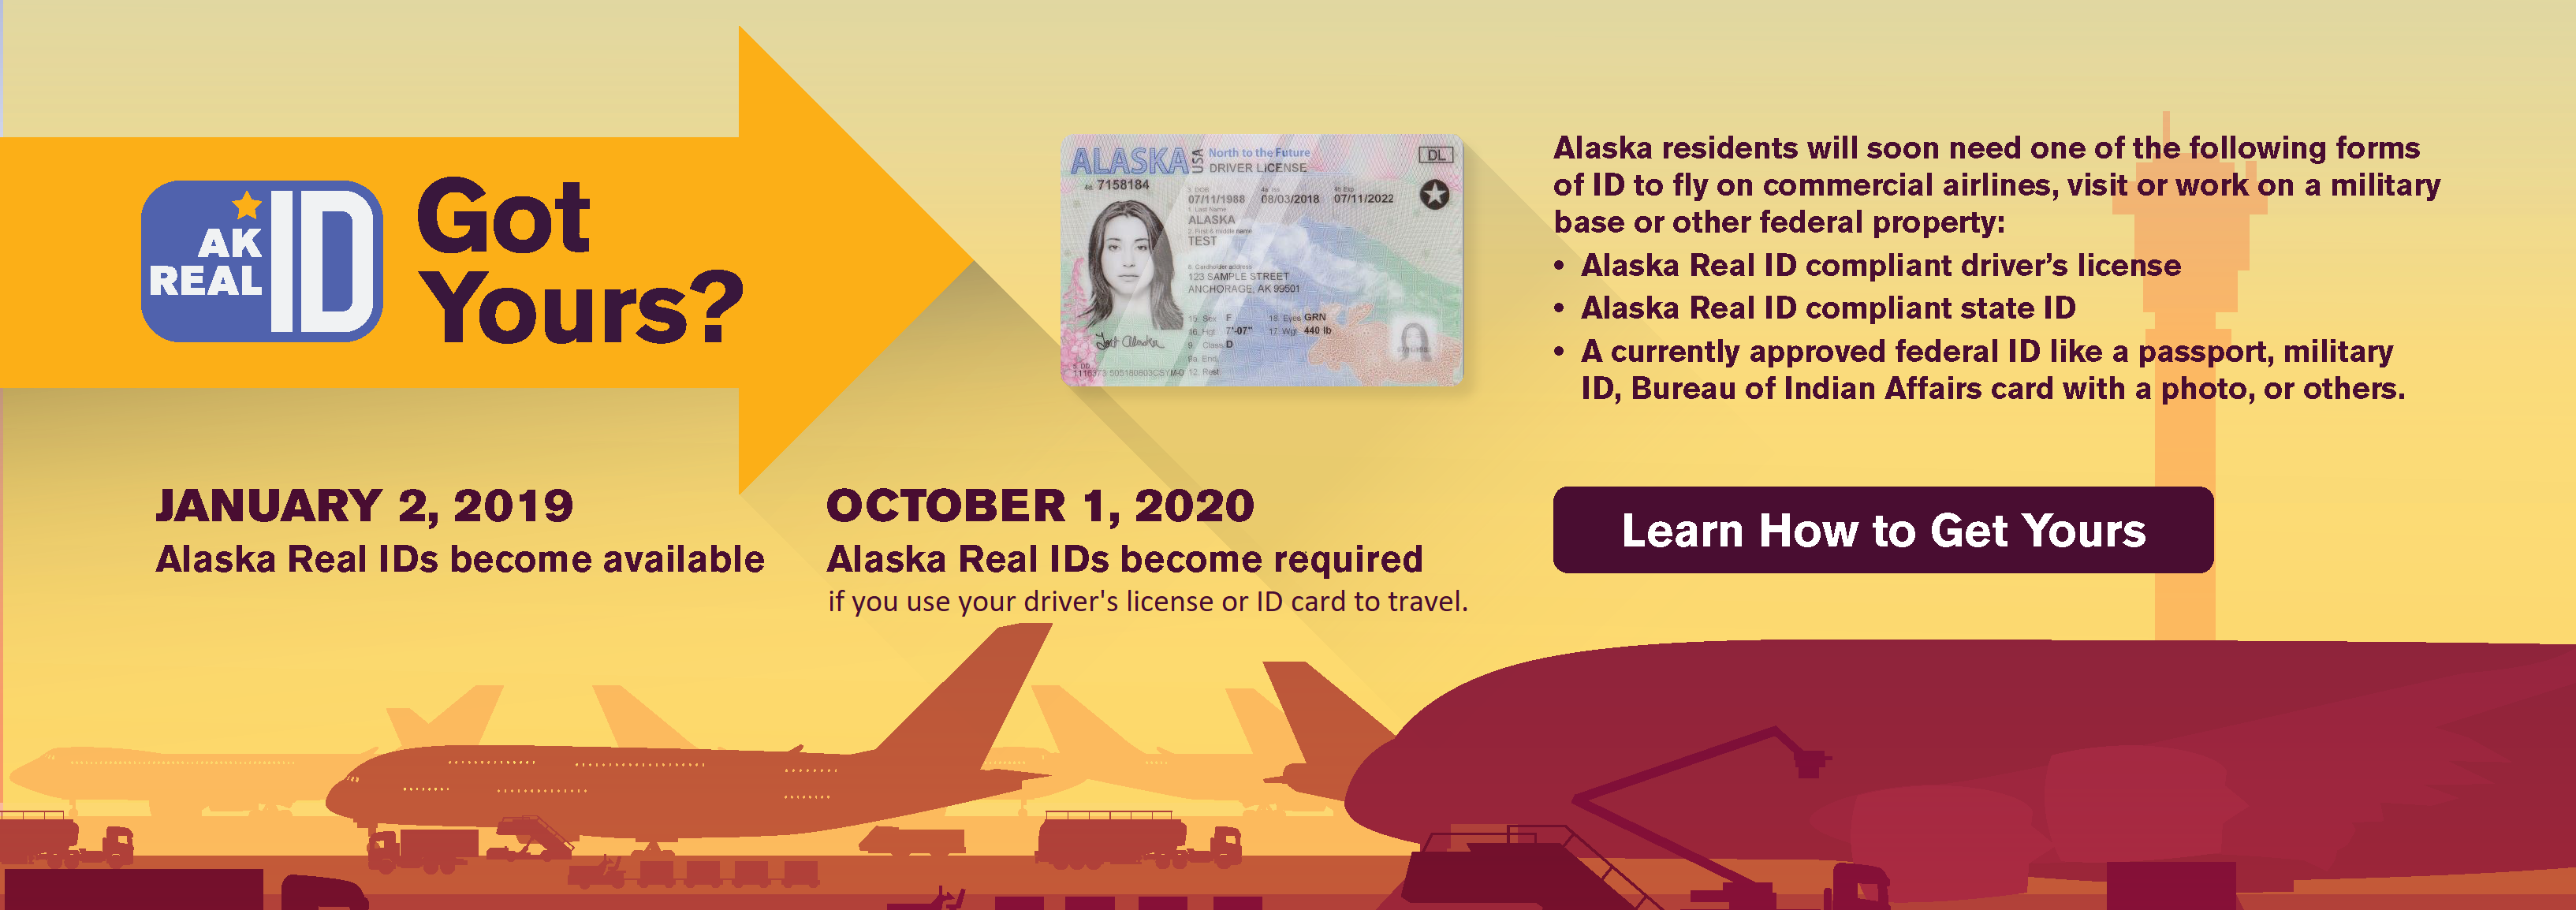 Your Alaska ID and License in the News, Division of Motor